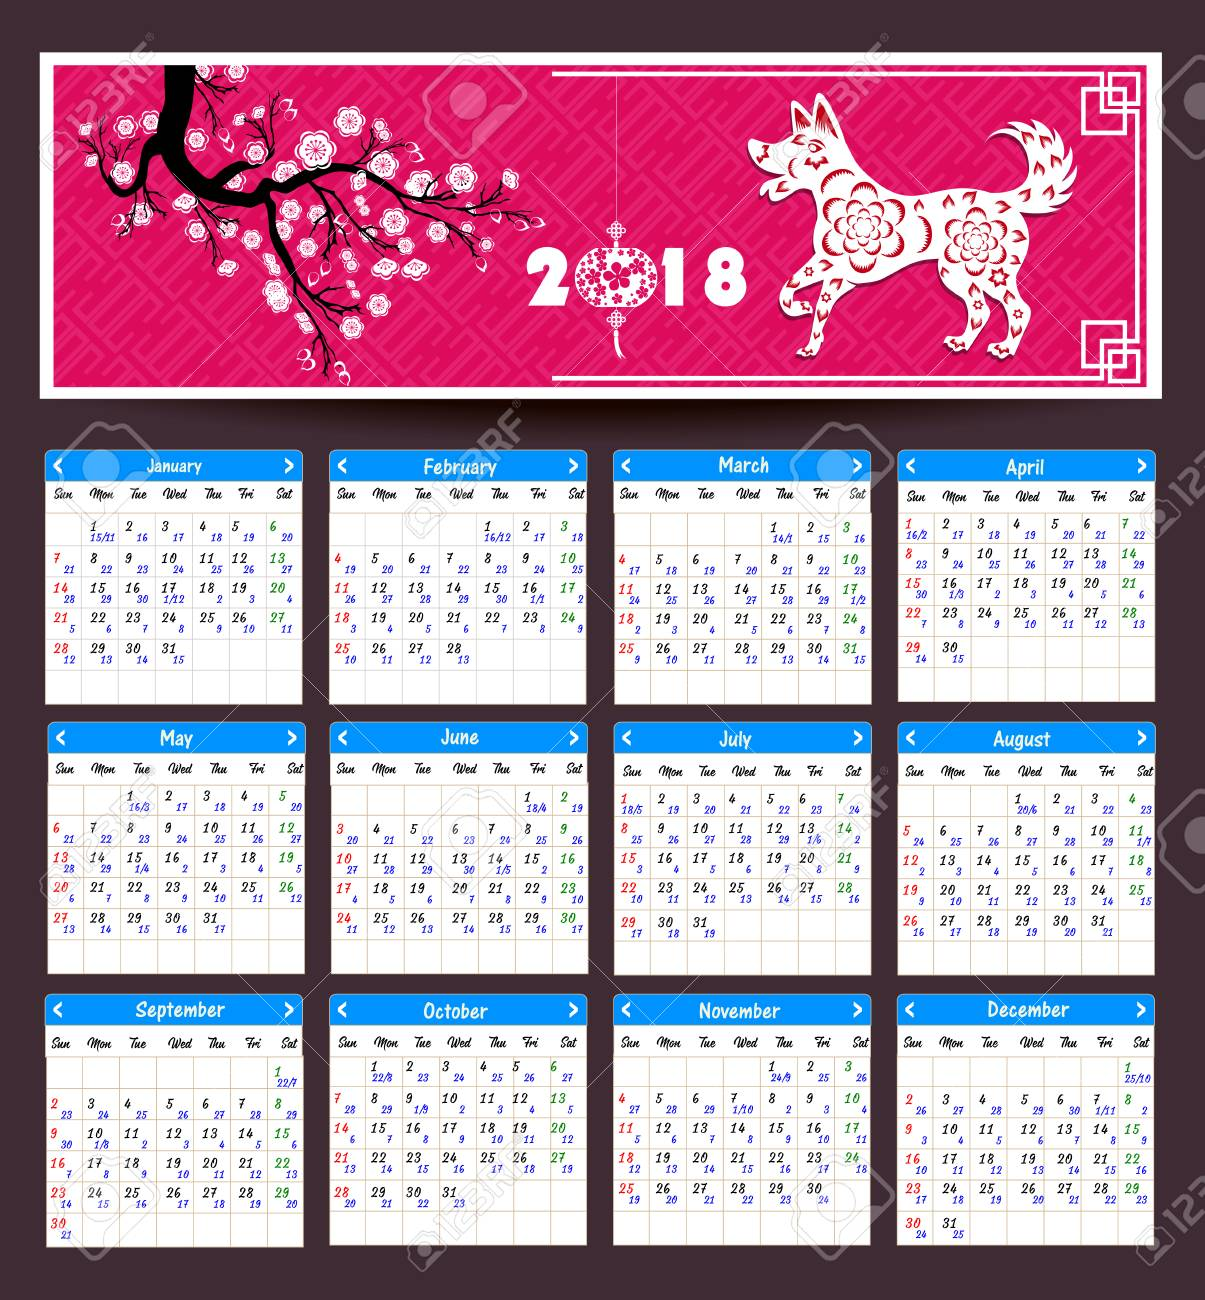 Calendrier Lunaire Chinois 2021 Lunar Calendar, Chinese Calendar For Happy New Year 2018 Year